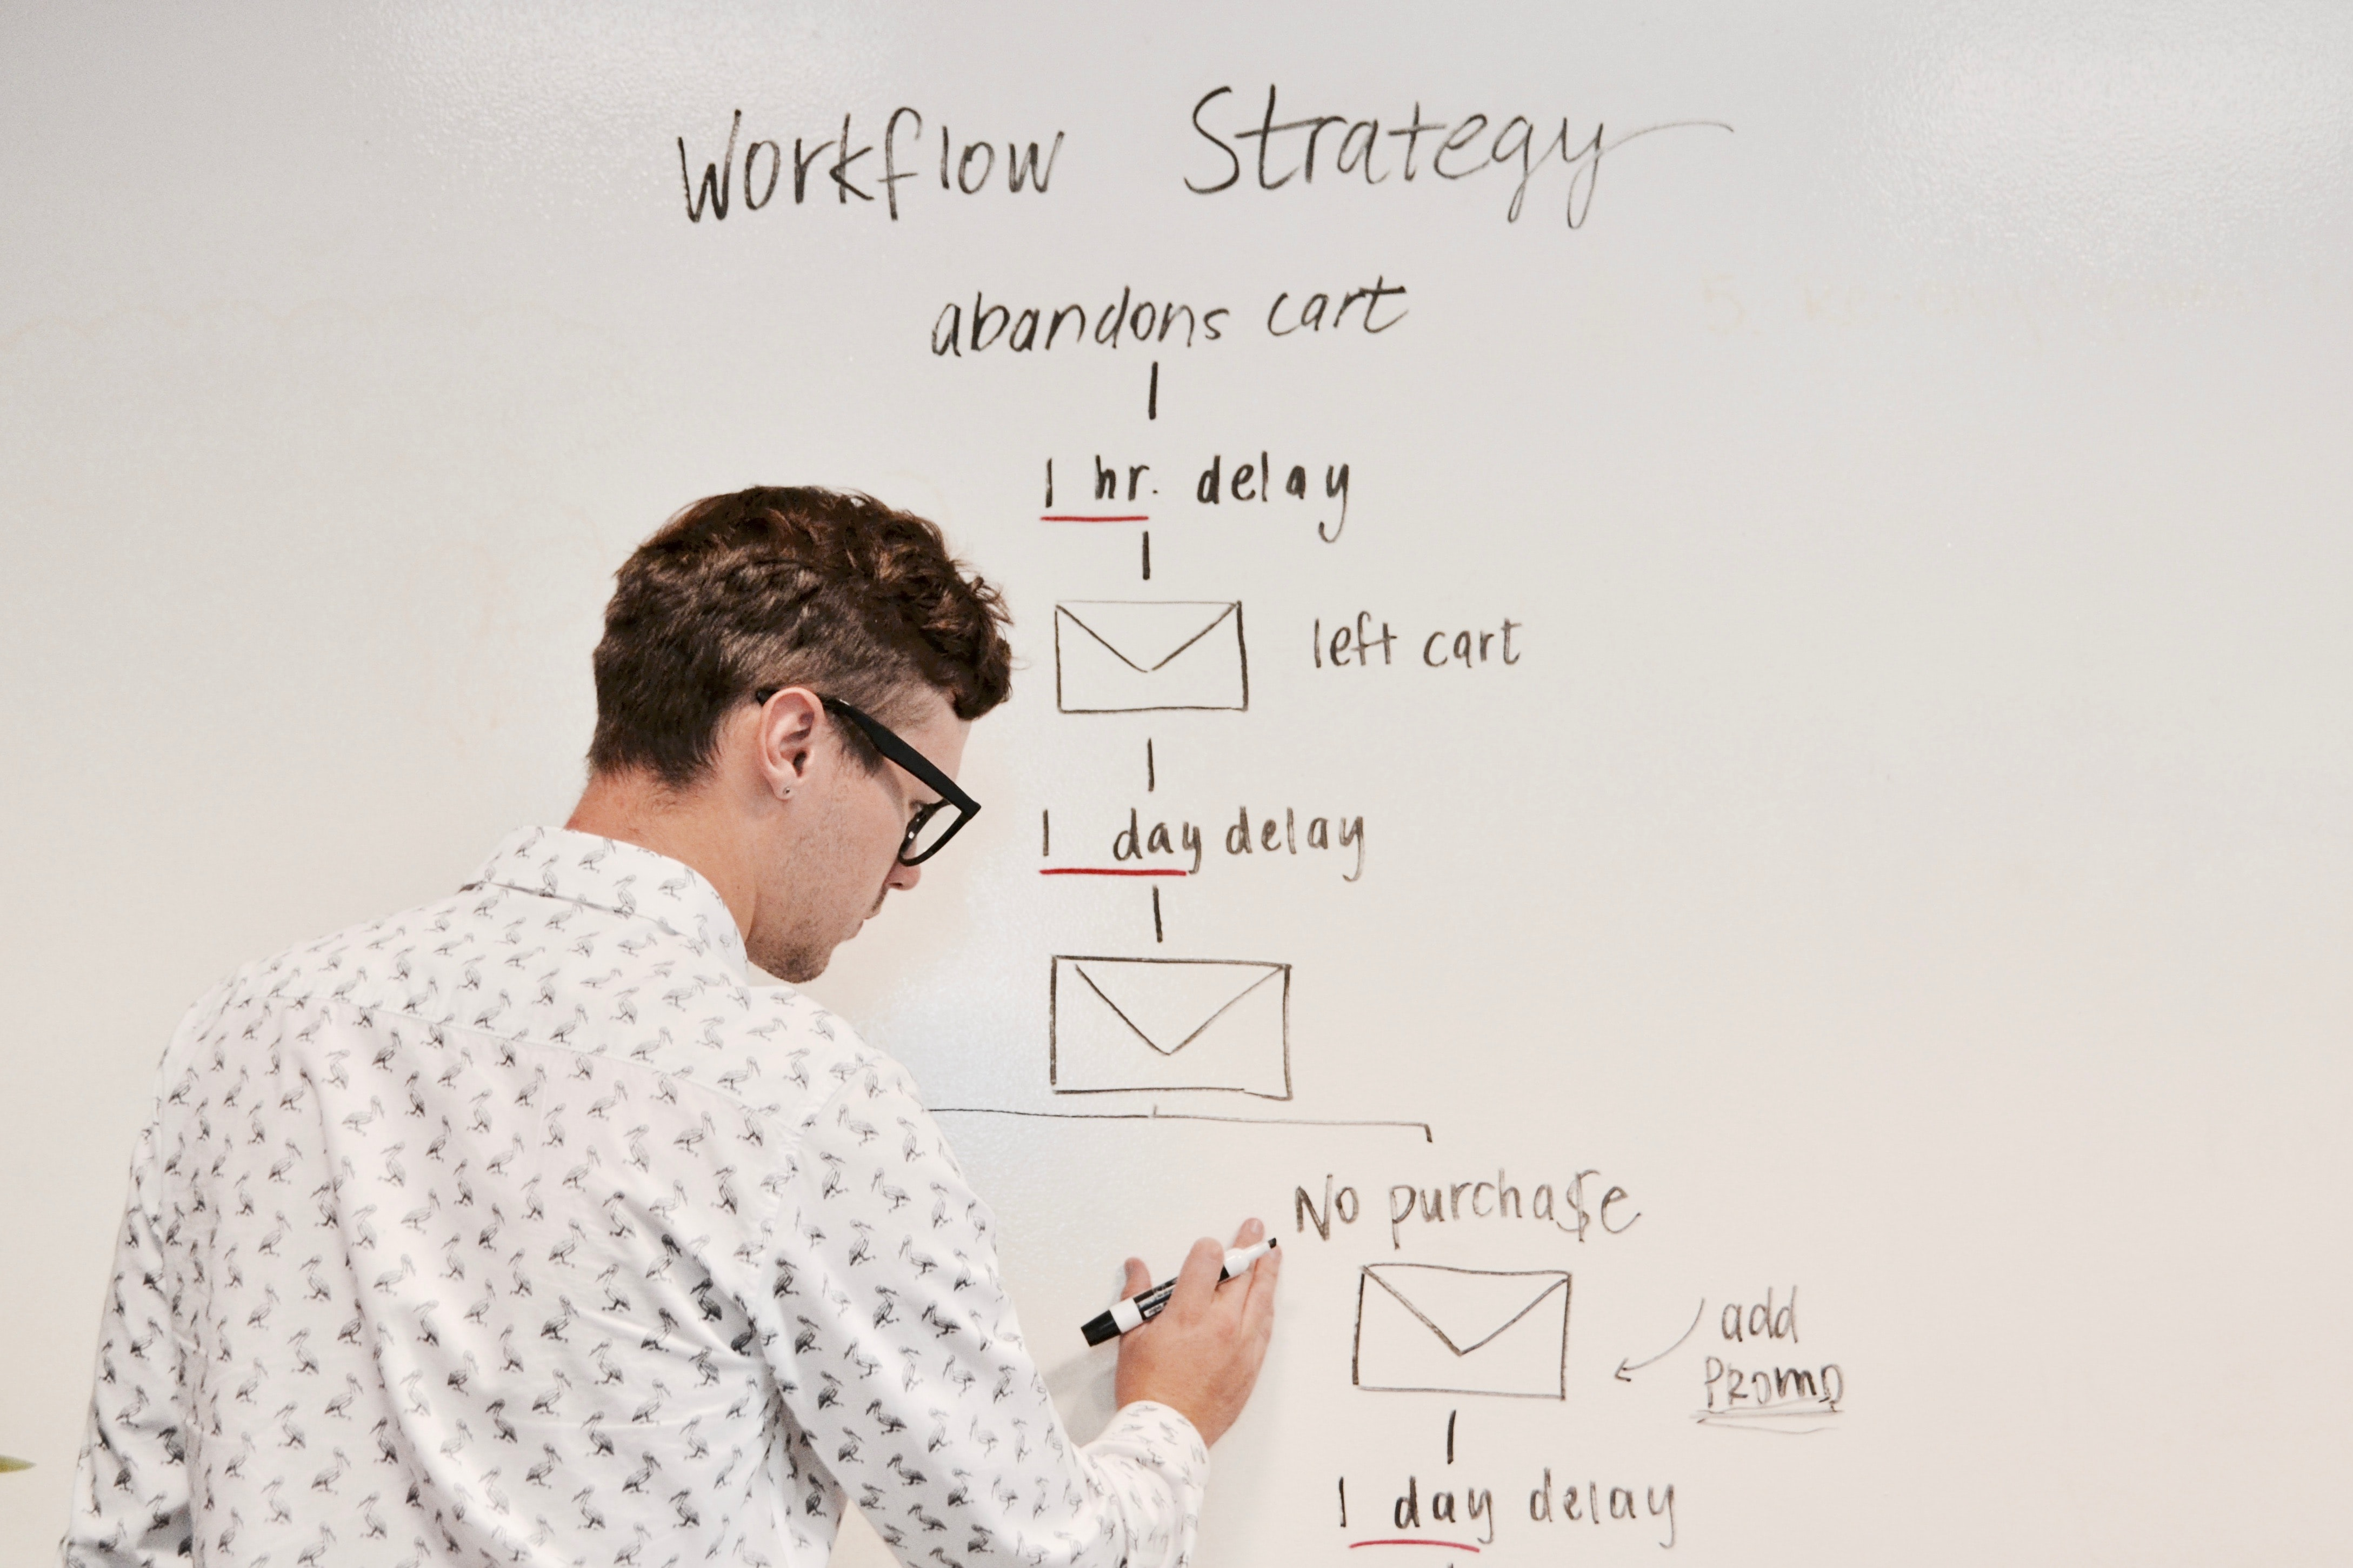 drip email campaigns strategy